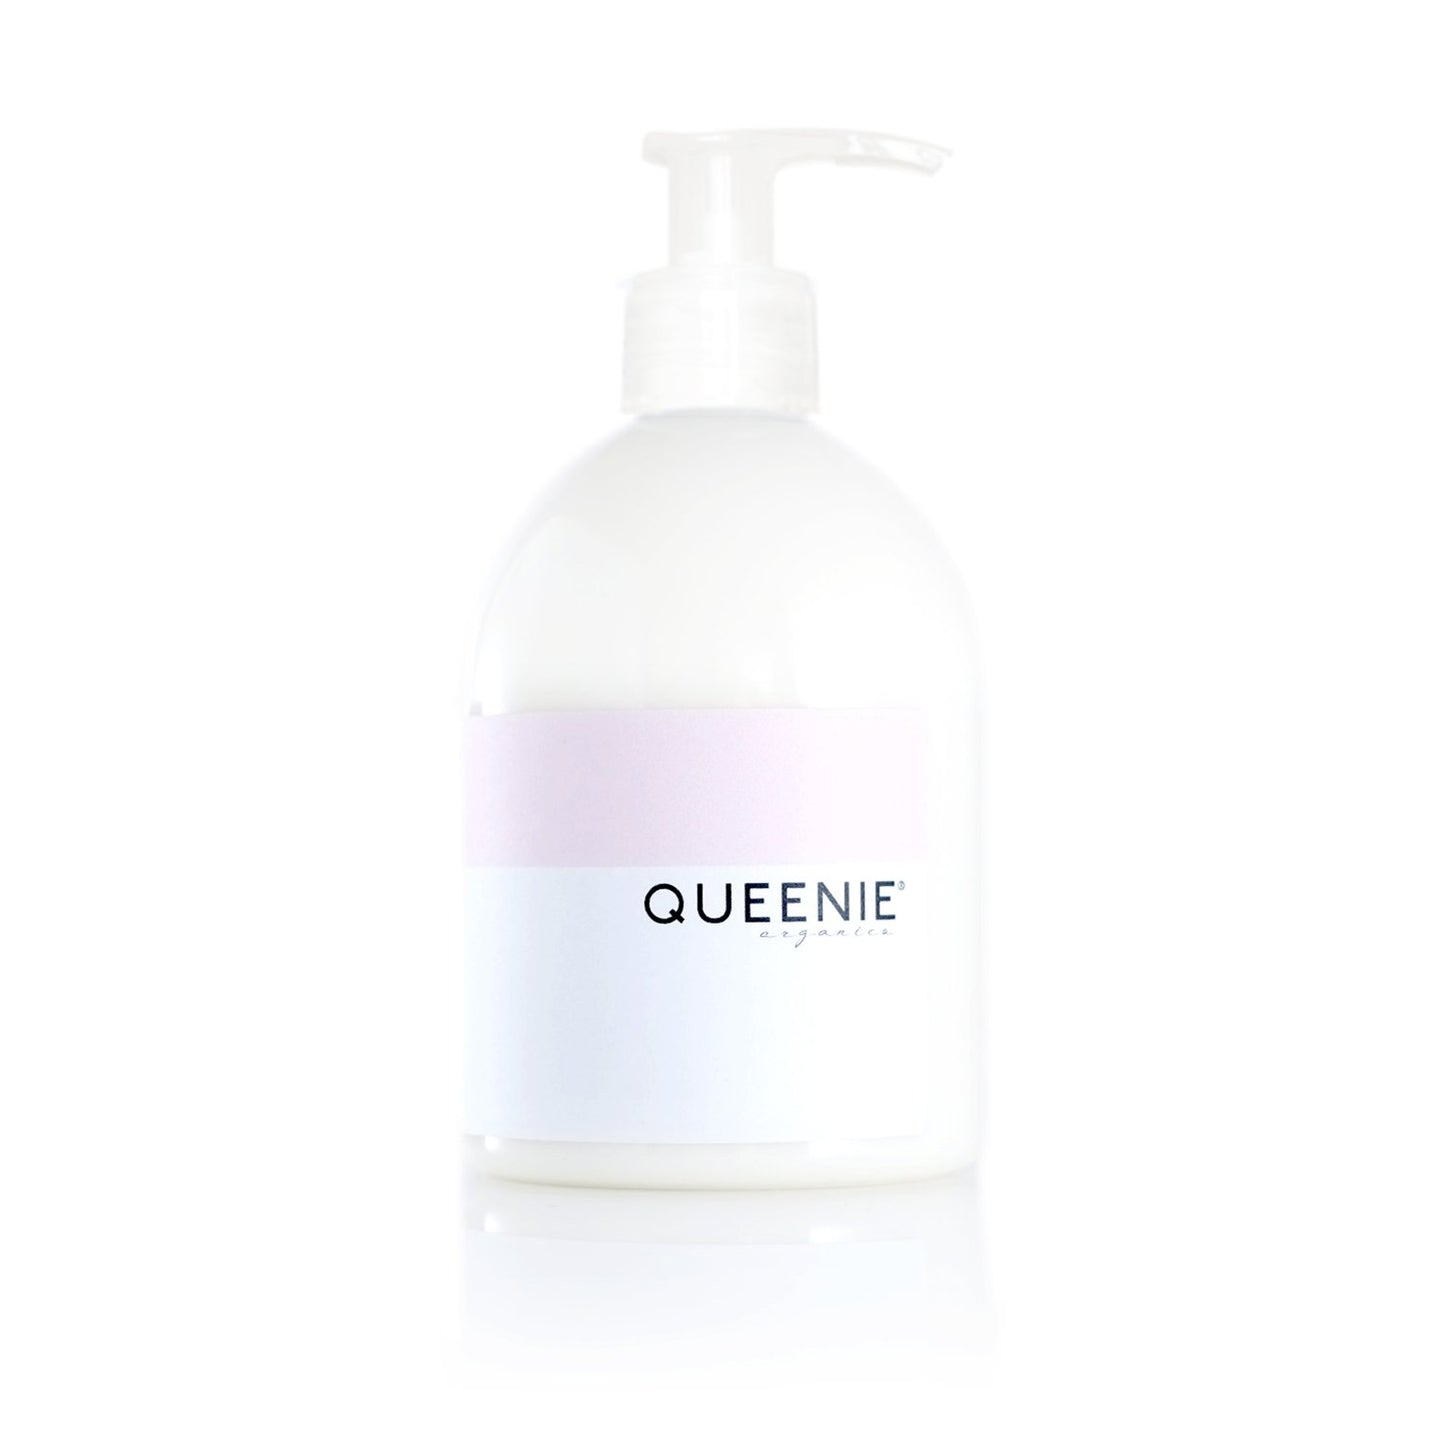 YLANG YLANG AND PALMAROSA HAND & BODY CREAM beauty from Queenie Organics curated by pu·rist